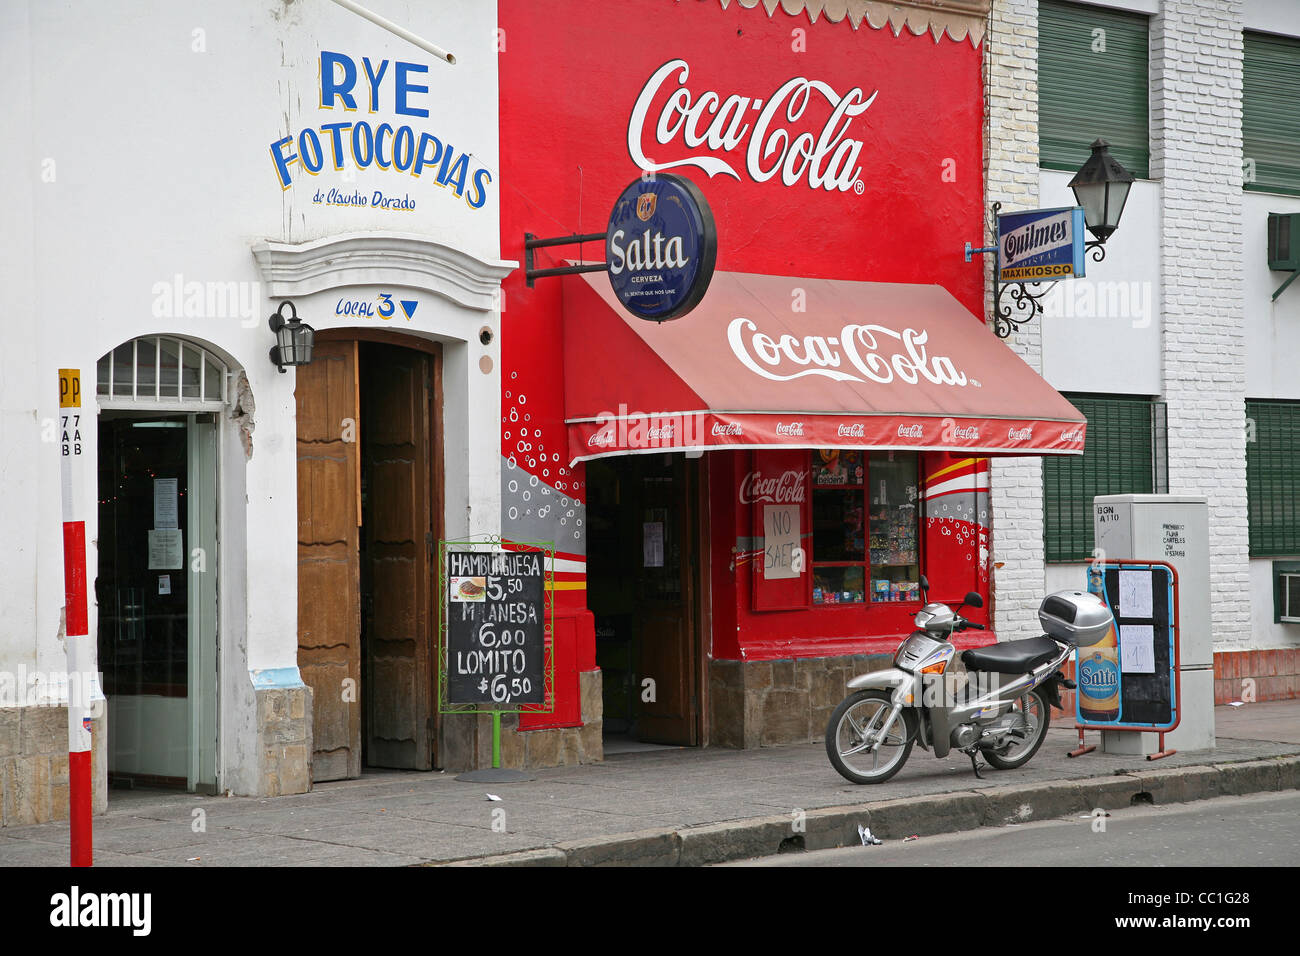 Shop with Coca Cola advertisement on façade in the town Salta, Argentina - Stock Image